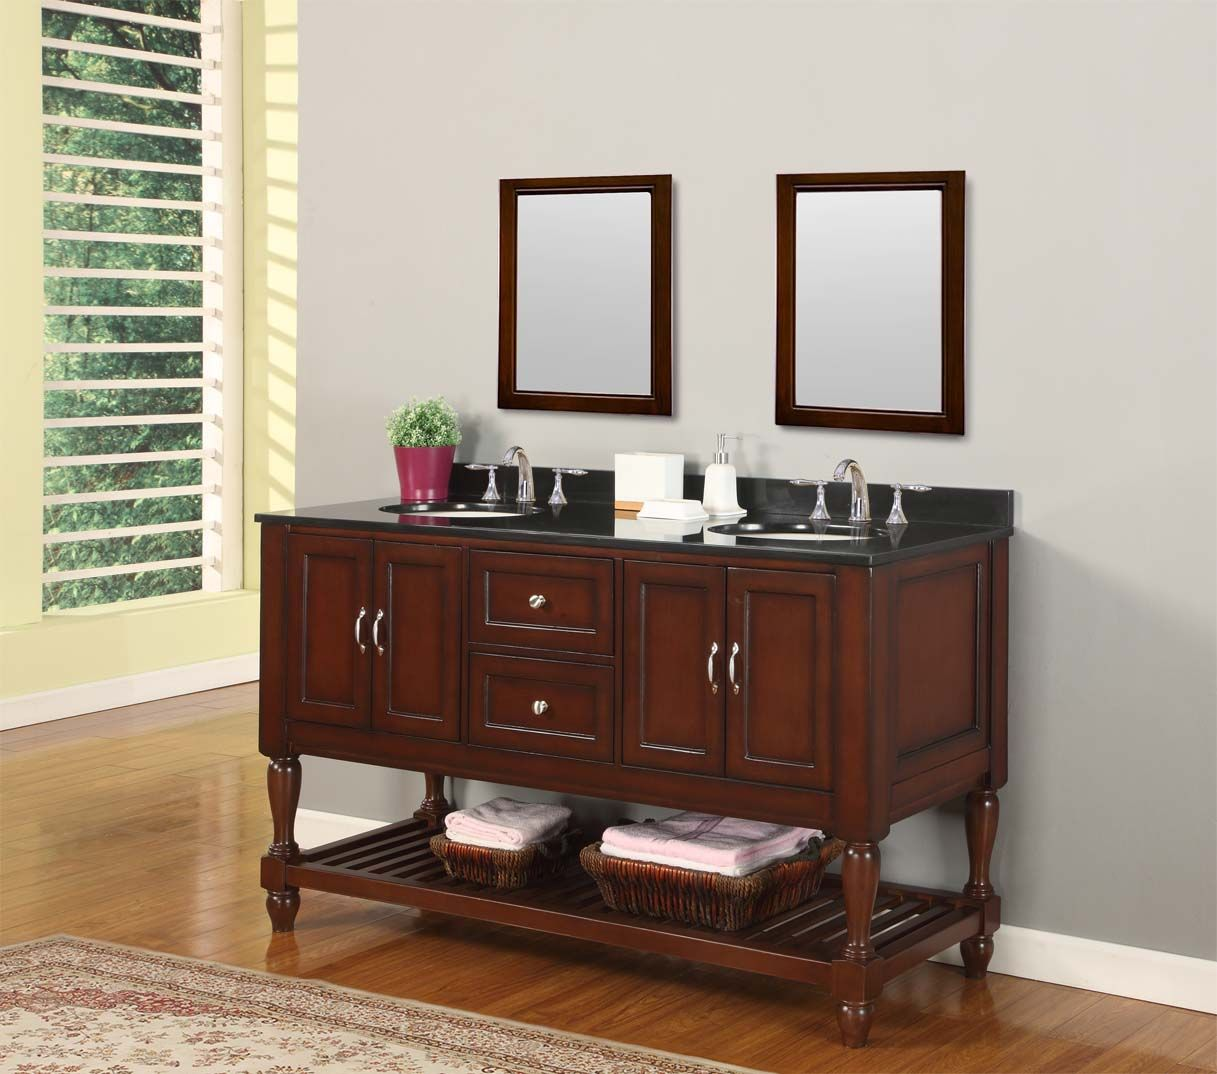 bathroom sink cabinets: style double bathroom vanity sink console